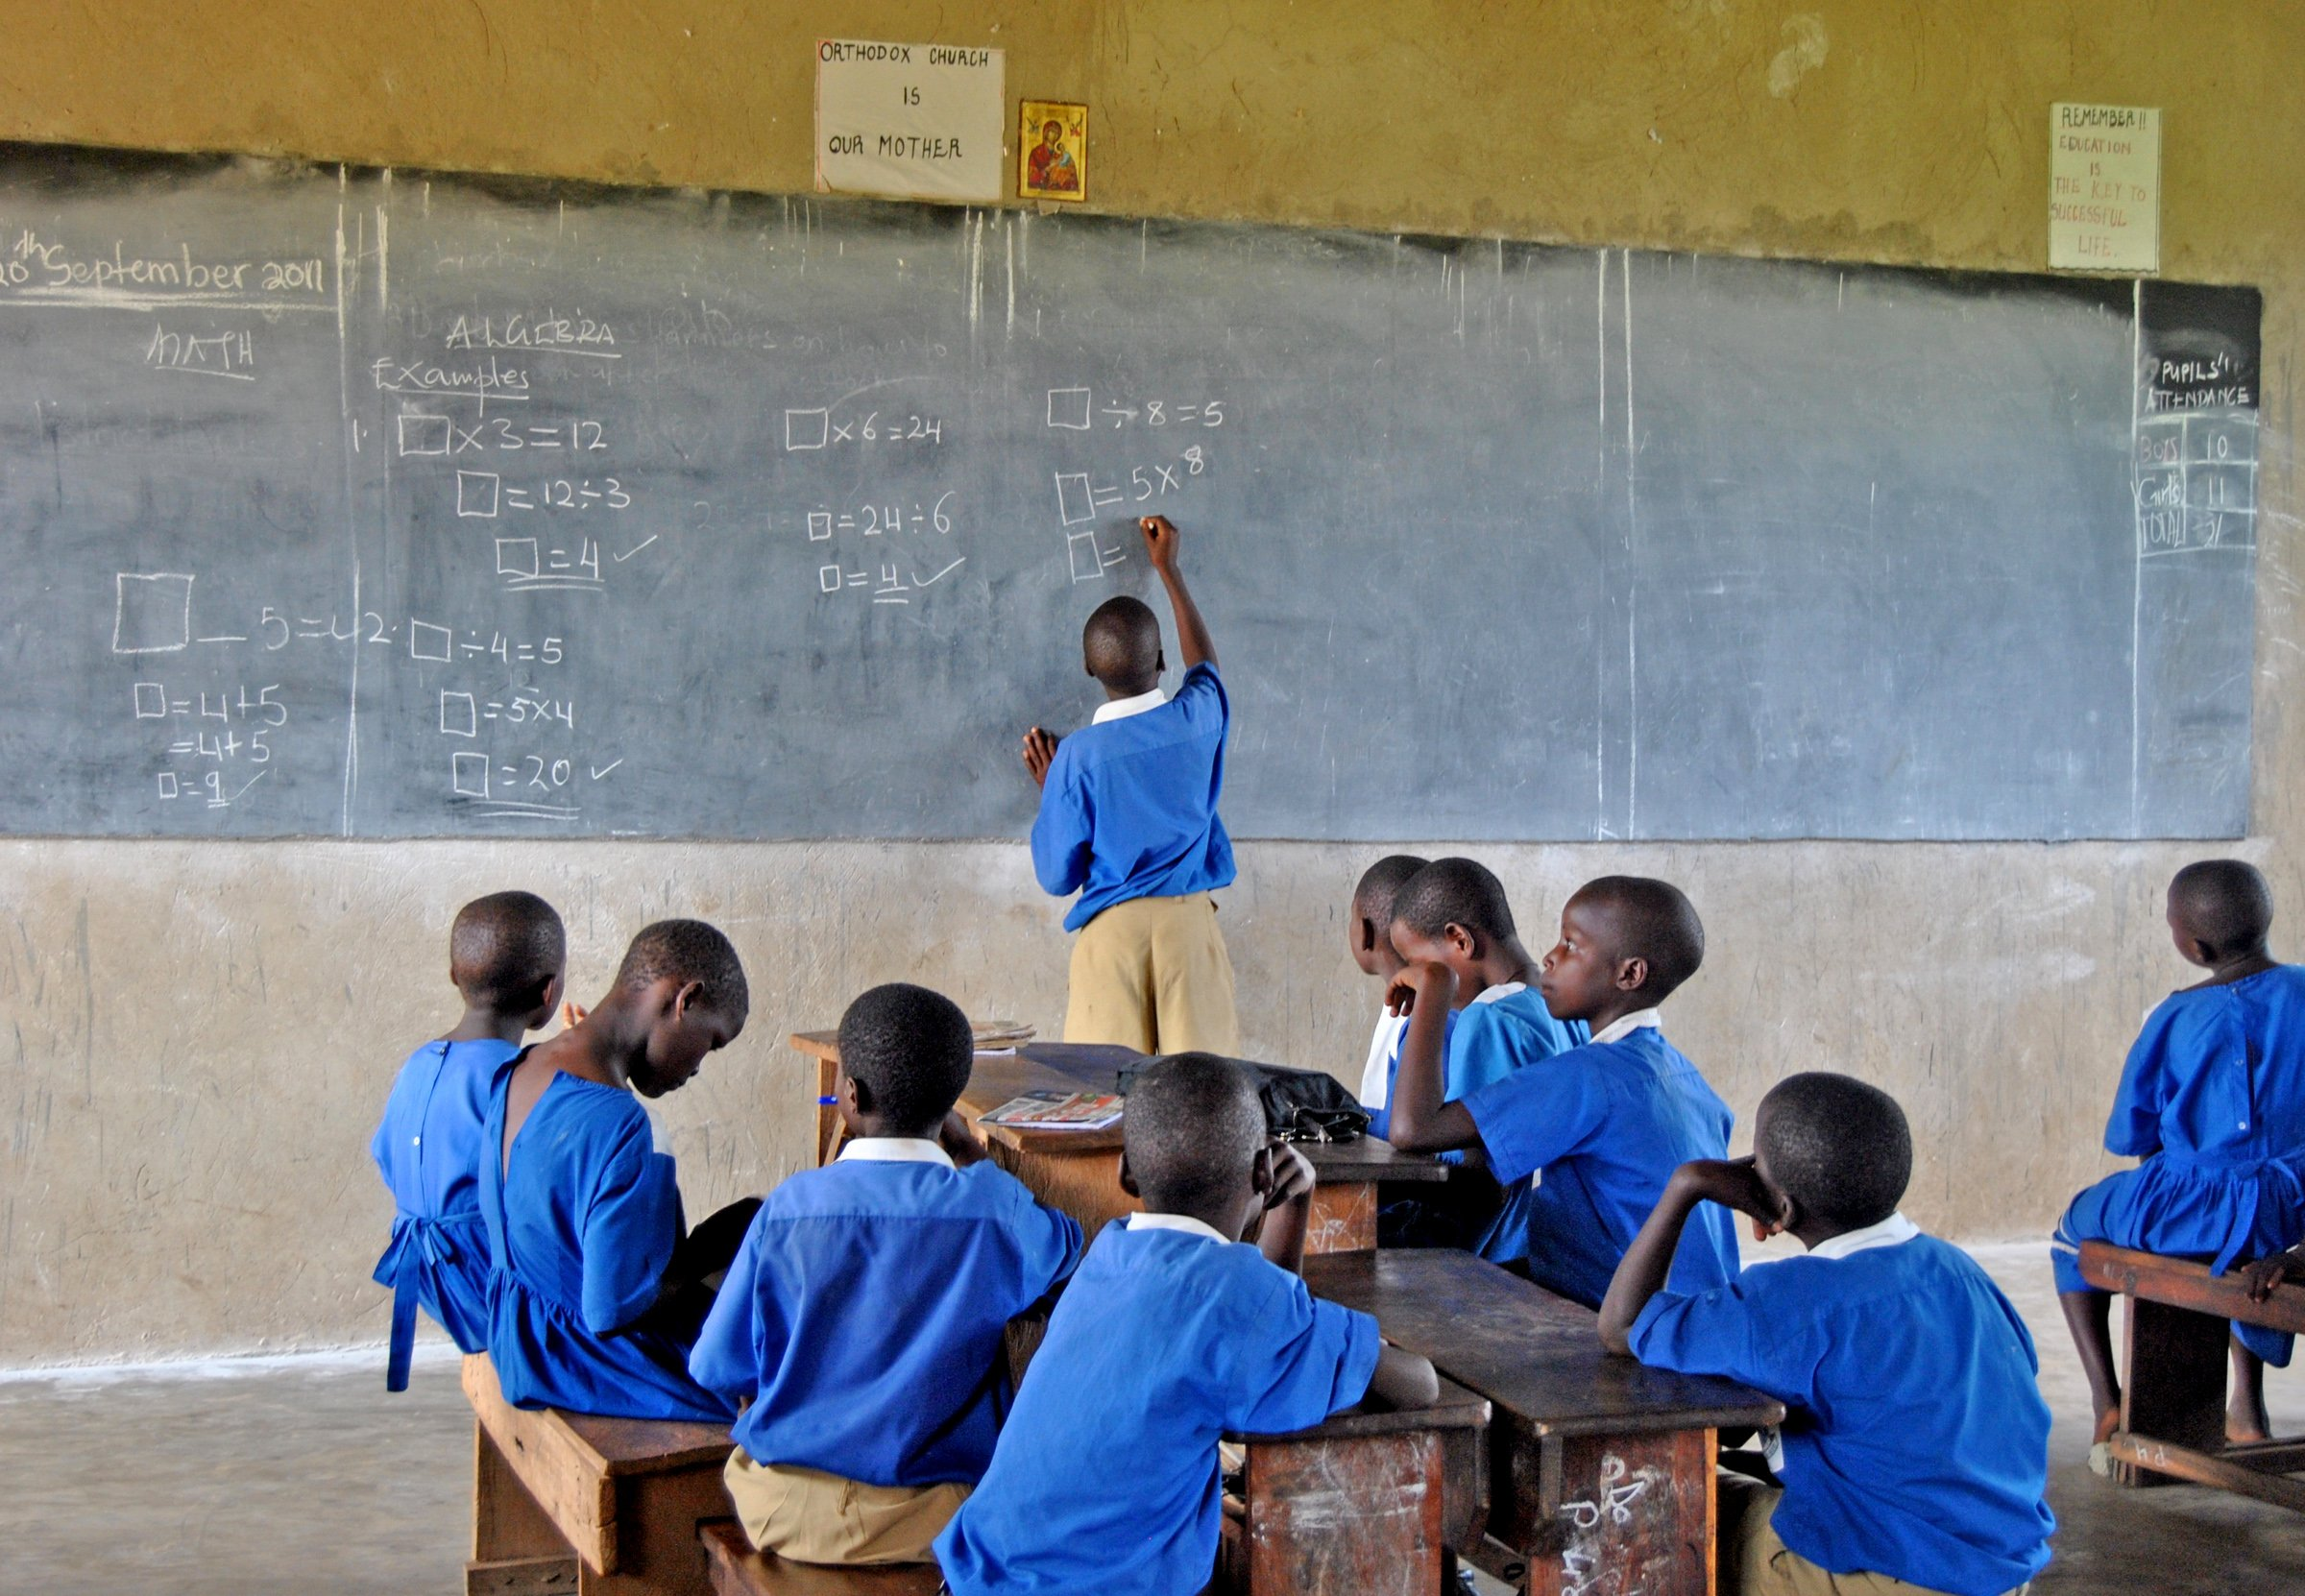 Primary school students in their classroom, Luwero District, central Uganda (Nov 2011)